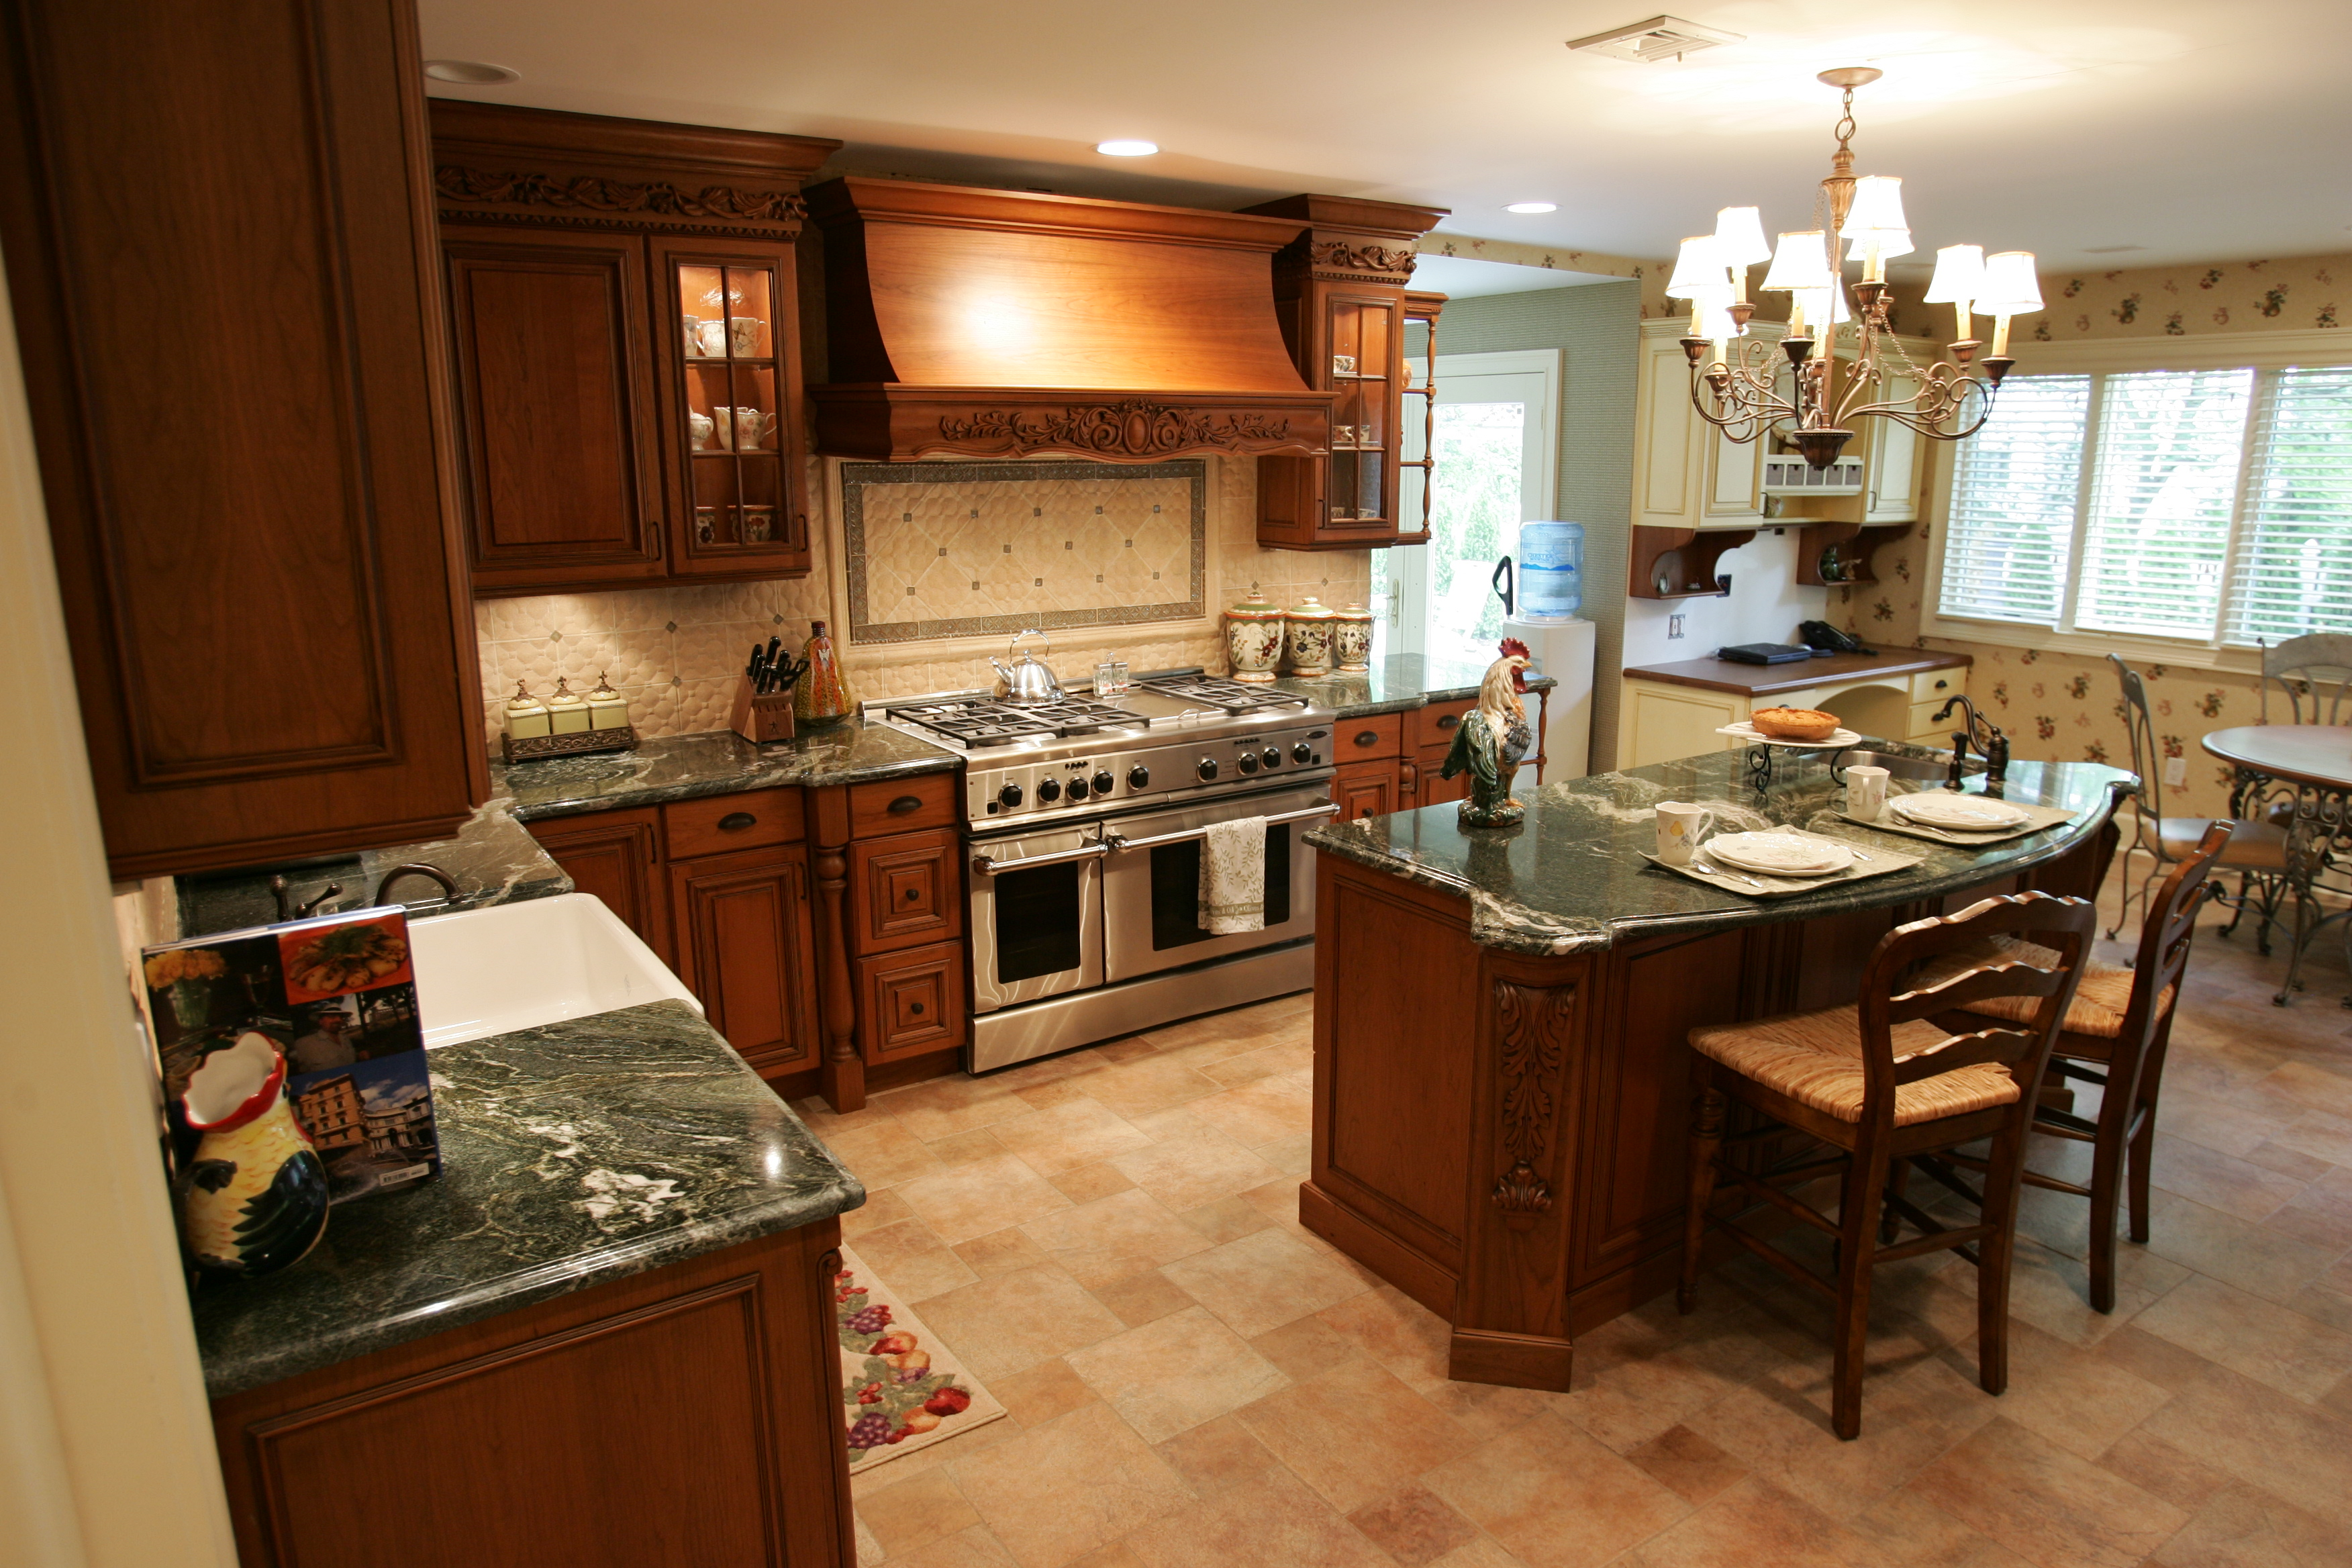 remodeling your kitchen soup volunteer houston thinking of read this boss cabinetry